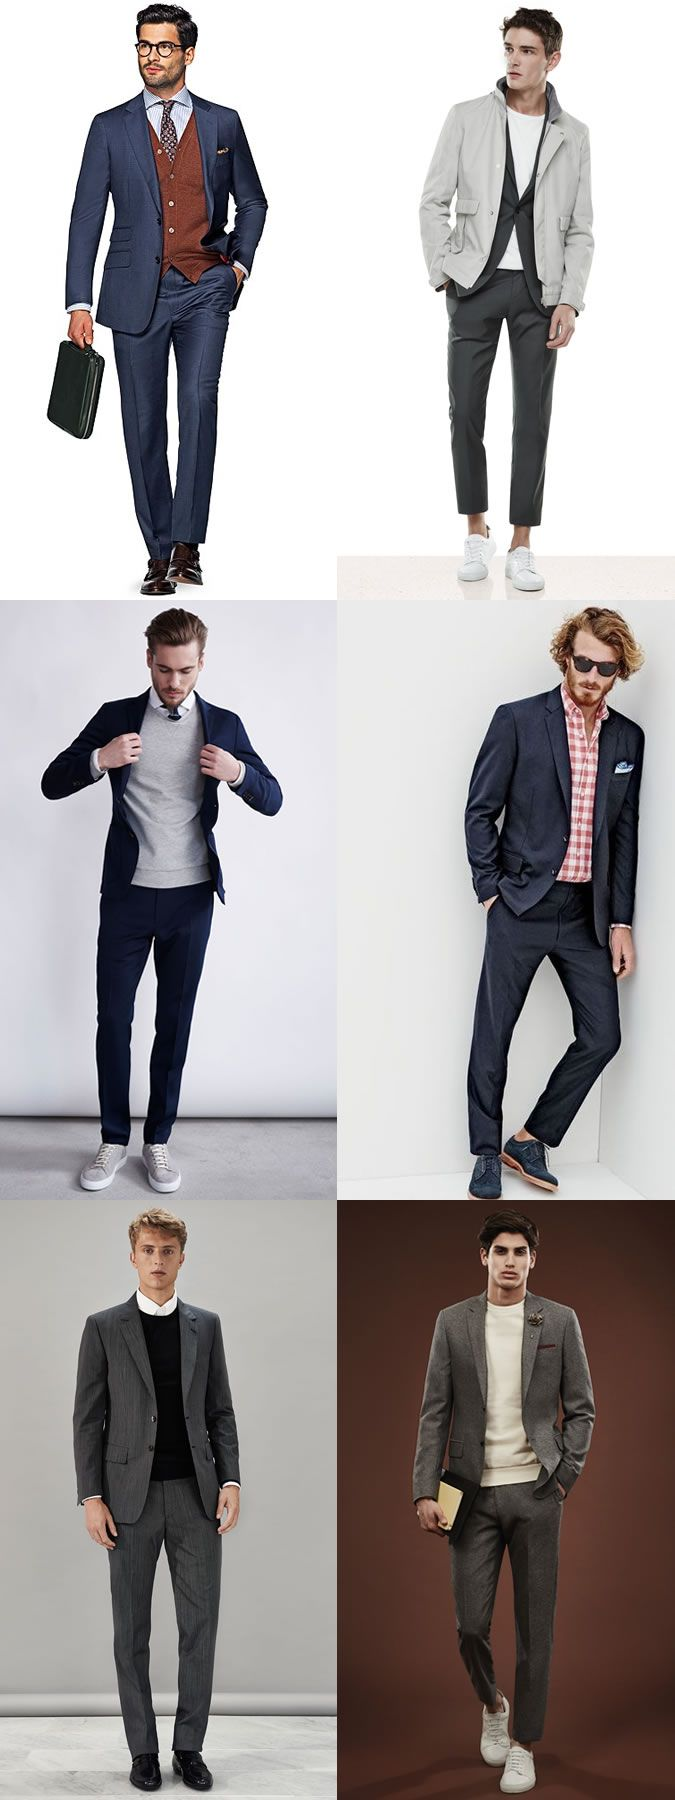 Men's Summer and winter suit styling tricks outfit inspiration lookbook